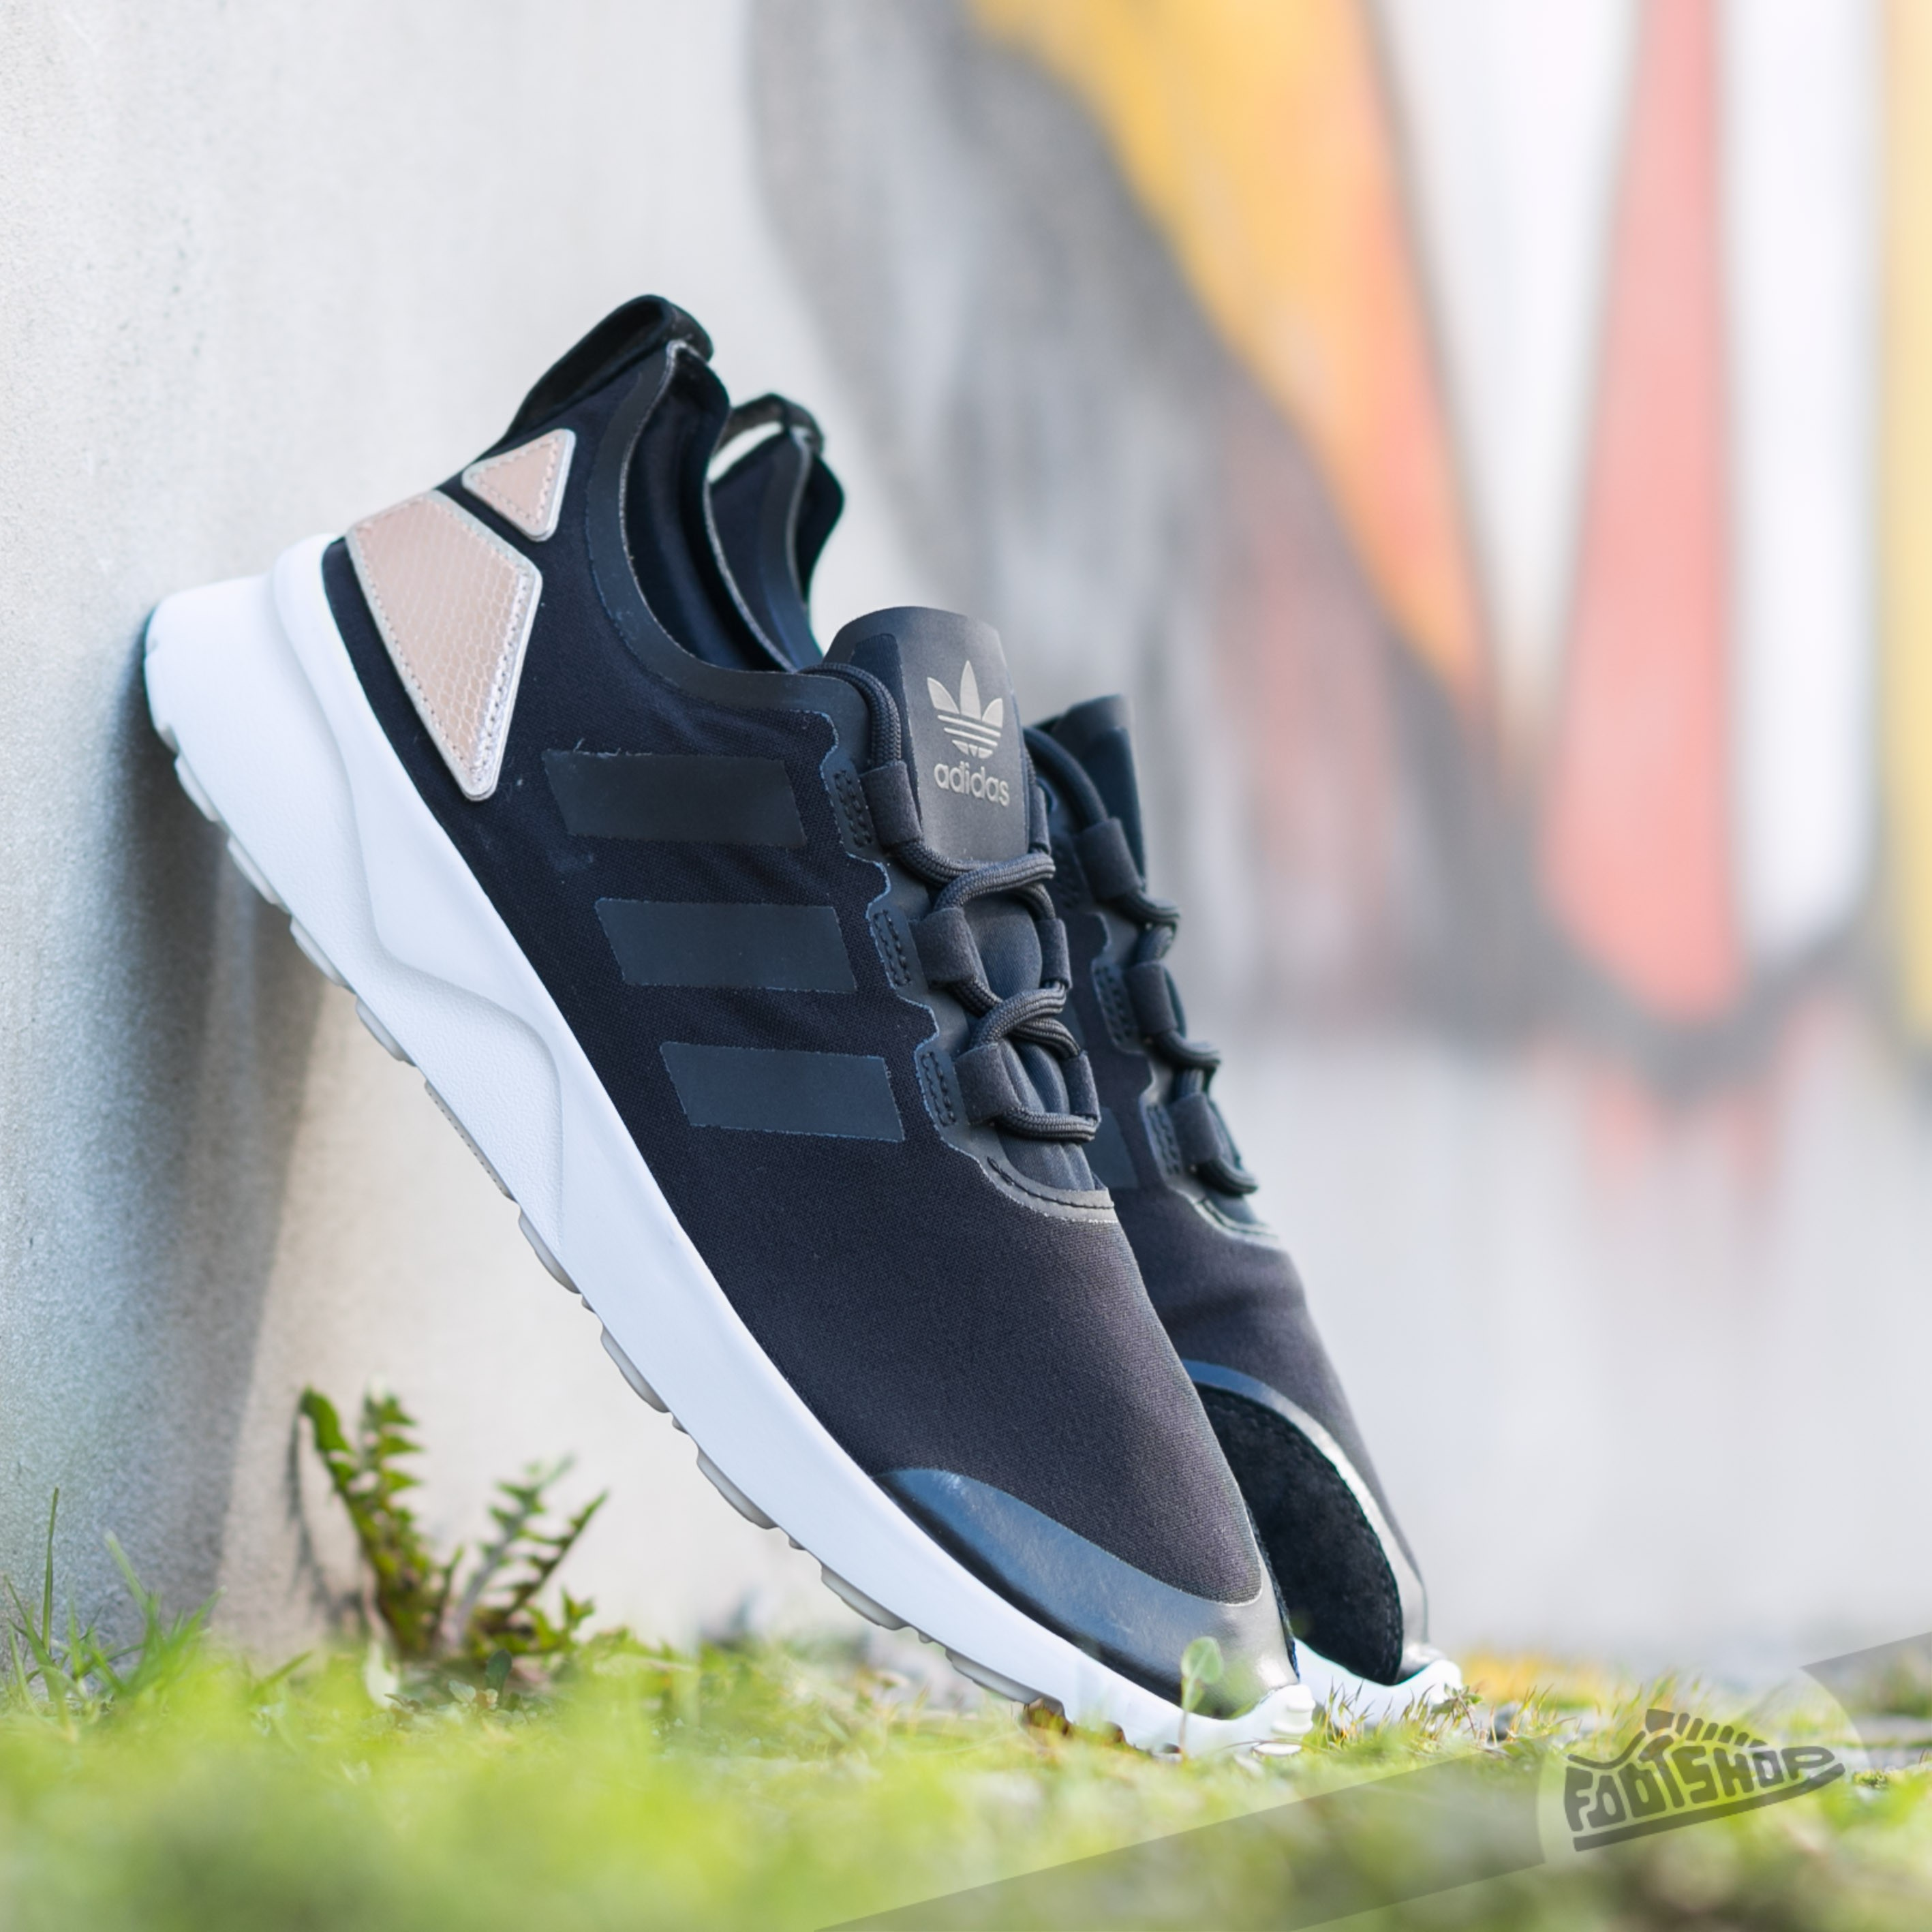 premium selection a5027 8ea25 adidas Zx Flux ADV Verve W Core Black/ Core Black/ Copper ...